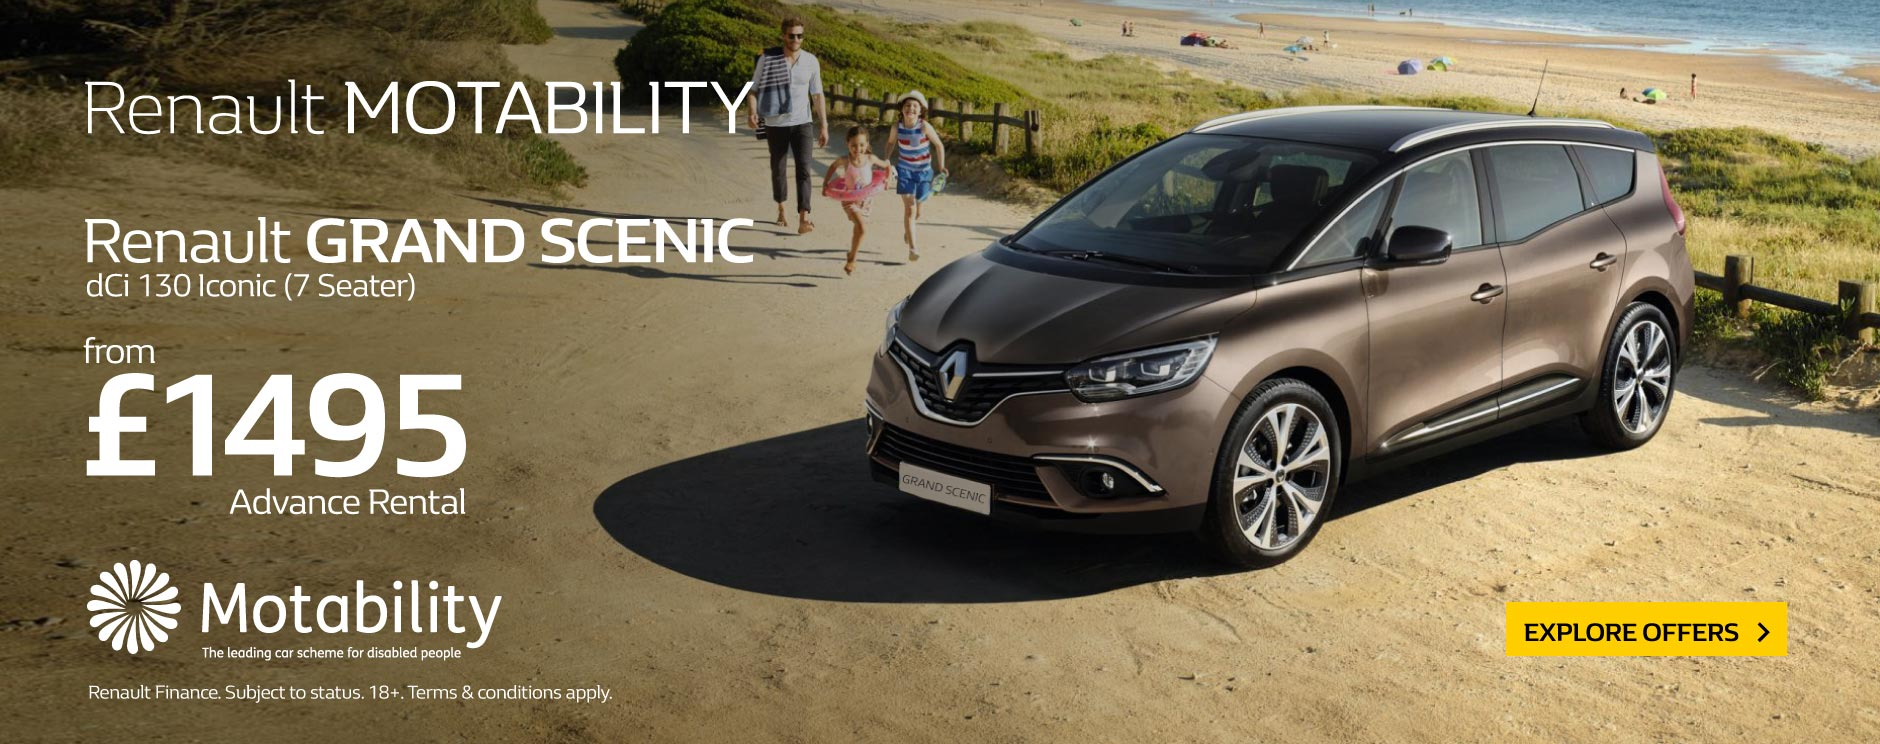 Renault Grand Scenic dCi 130 Iconic BB